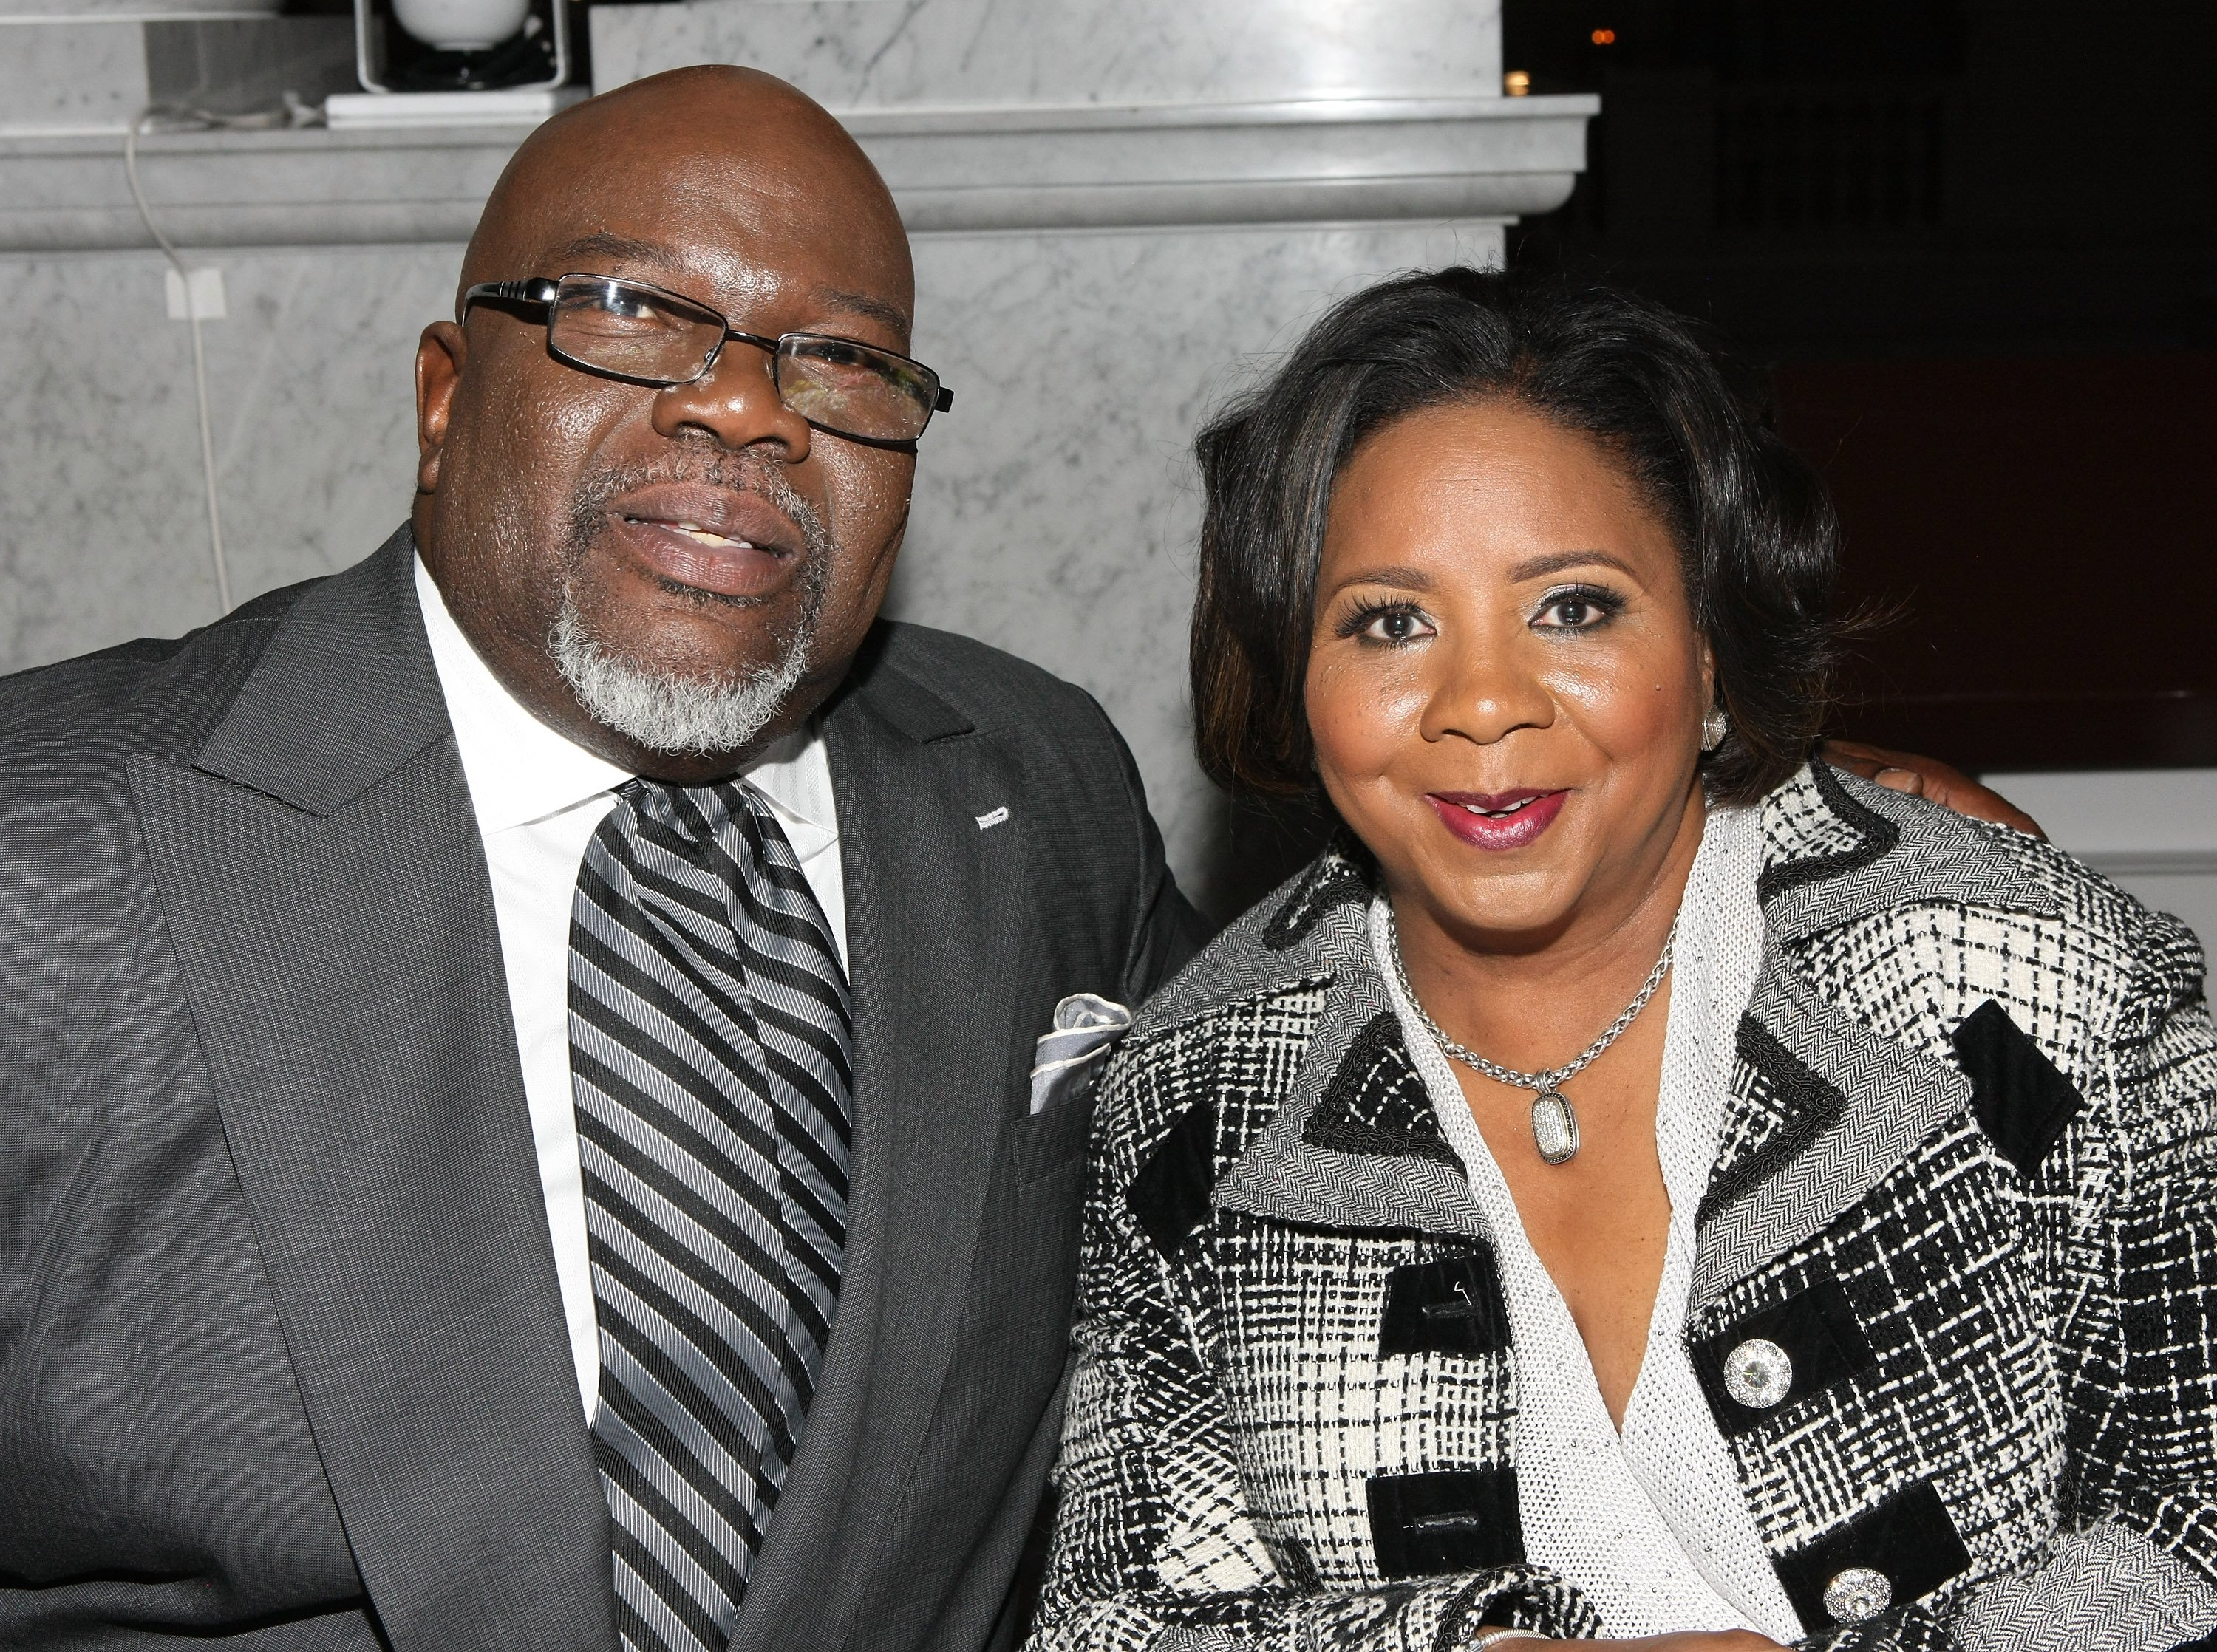 Bishop T. D. Jakes and his wife Serita Jakes at the BET Honors 2013 in Washington, DC | Source: Getty Images